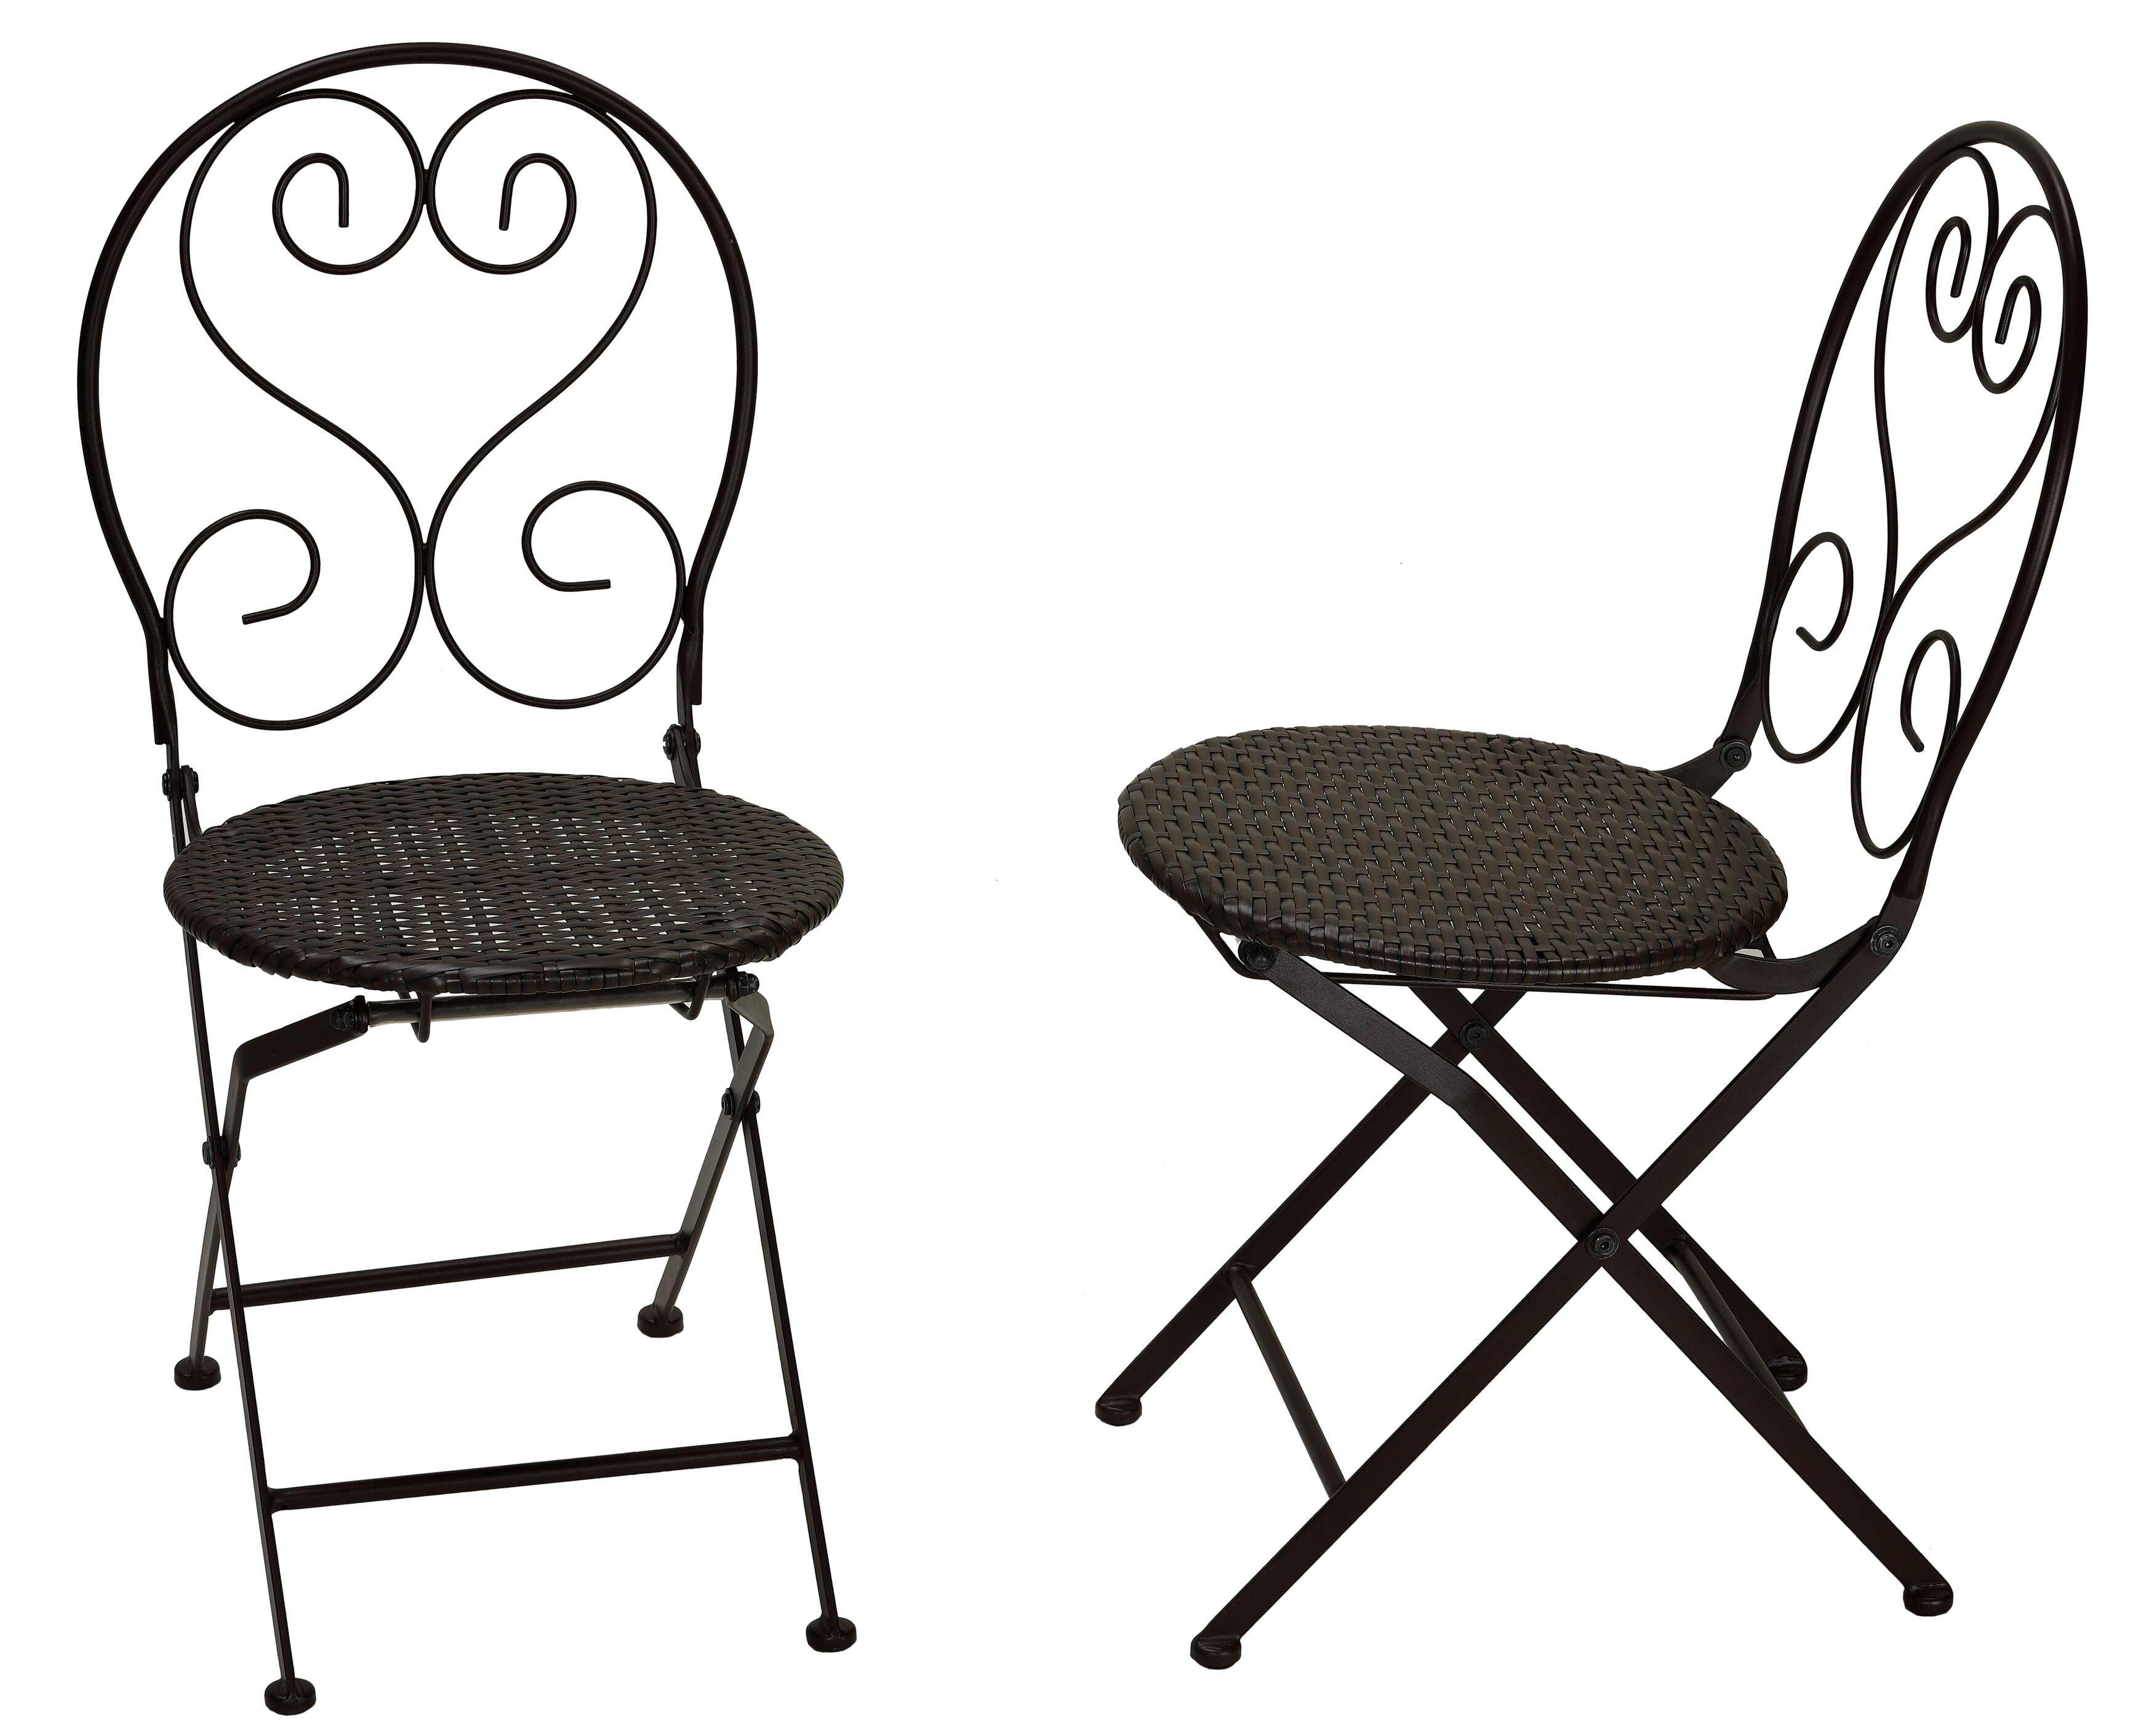 Peachy Hillesden Indoor Outdoor Metal Folding Patio Dining Chair With Wicker Bralicious Painted Fabric Chair Ideas Braliciousco